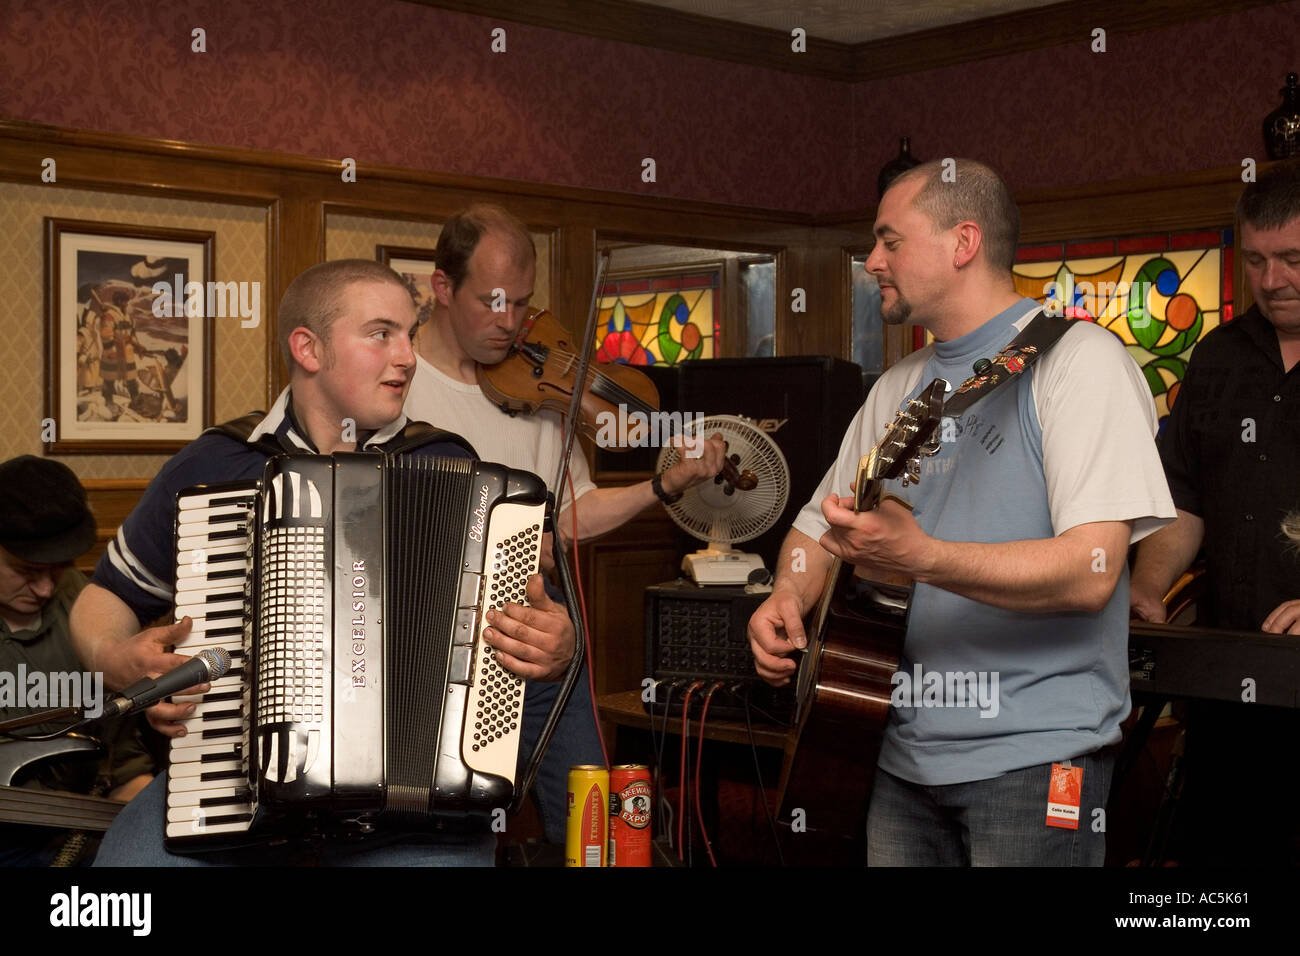 dh Orkney Folk Festival STROMNESS ORKNEY Musicians playing Accordion guitar fiddle uk pub scottish music player Stock Photo